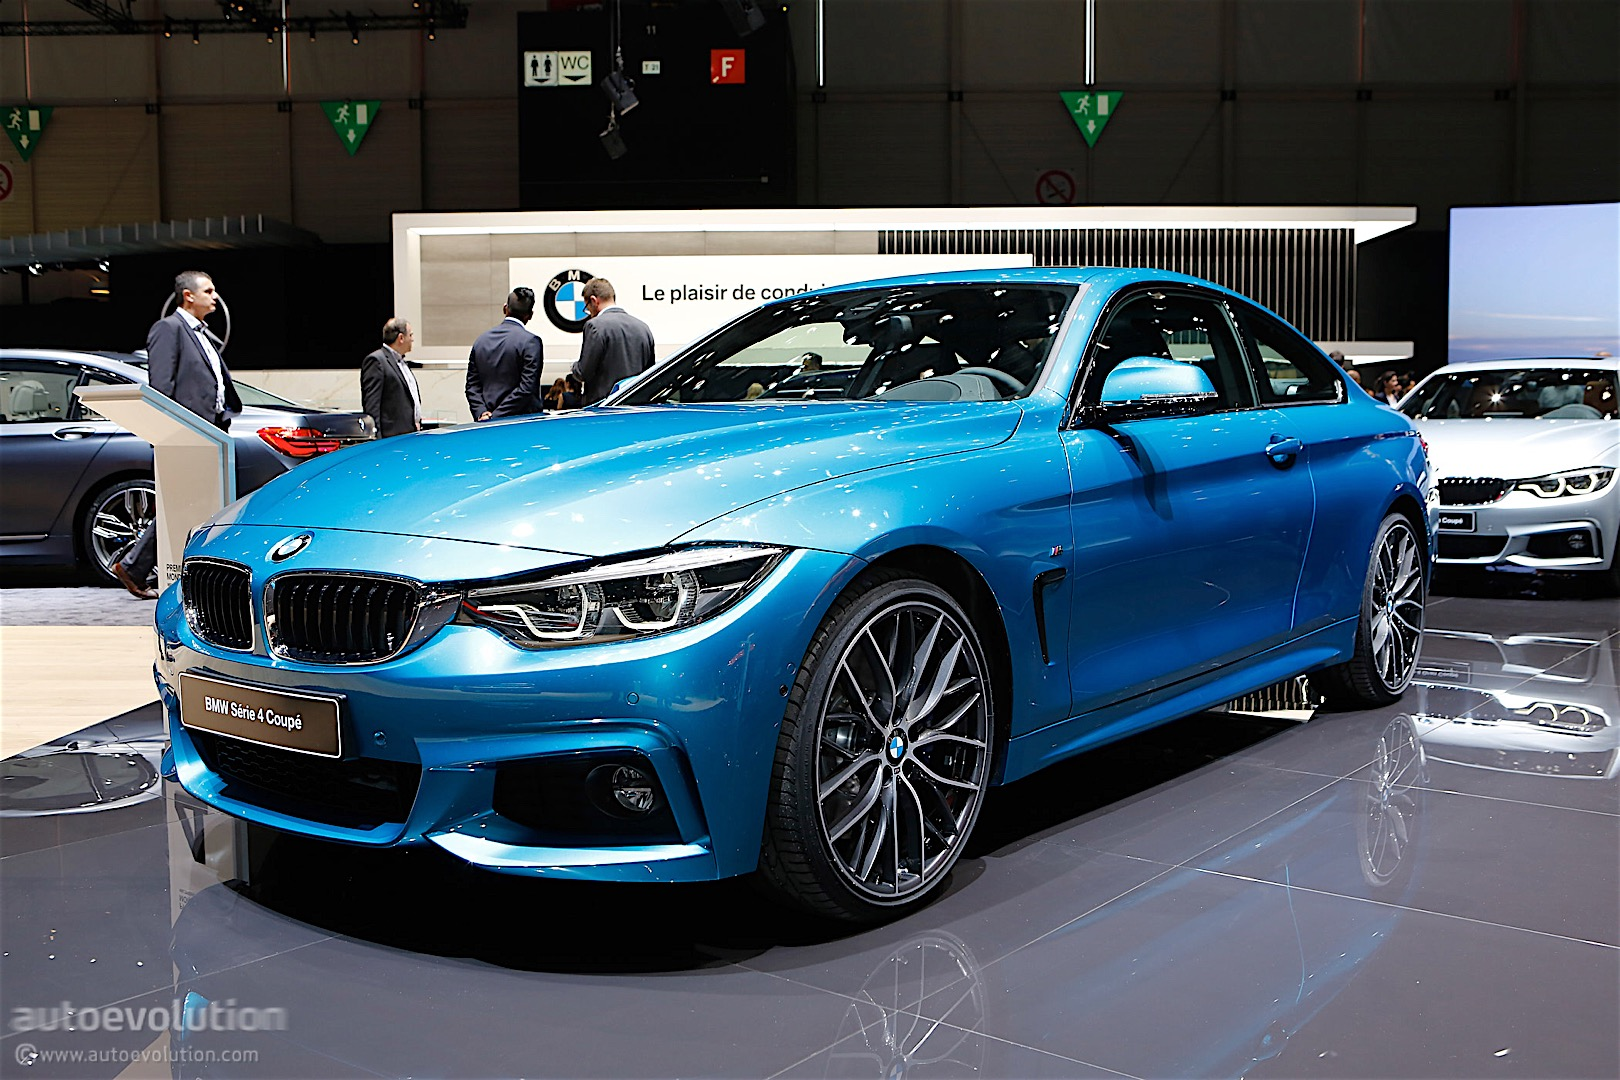 2017 bmw 4 series facelift comes to geneva full lineup present in the spotlight autoevolution. Black Bedroom Furniture Sets. Home Design Ideas